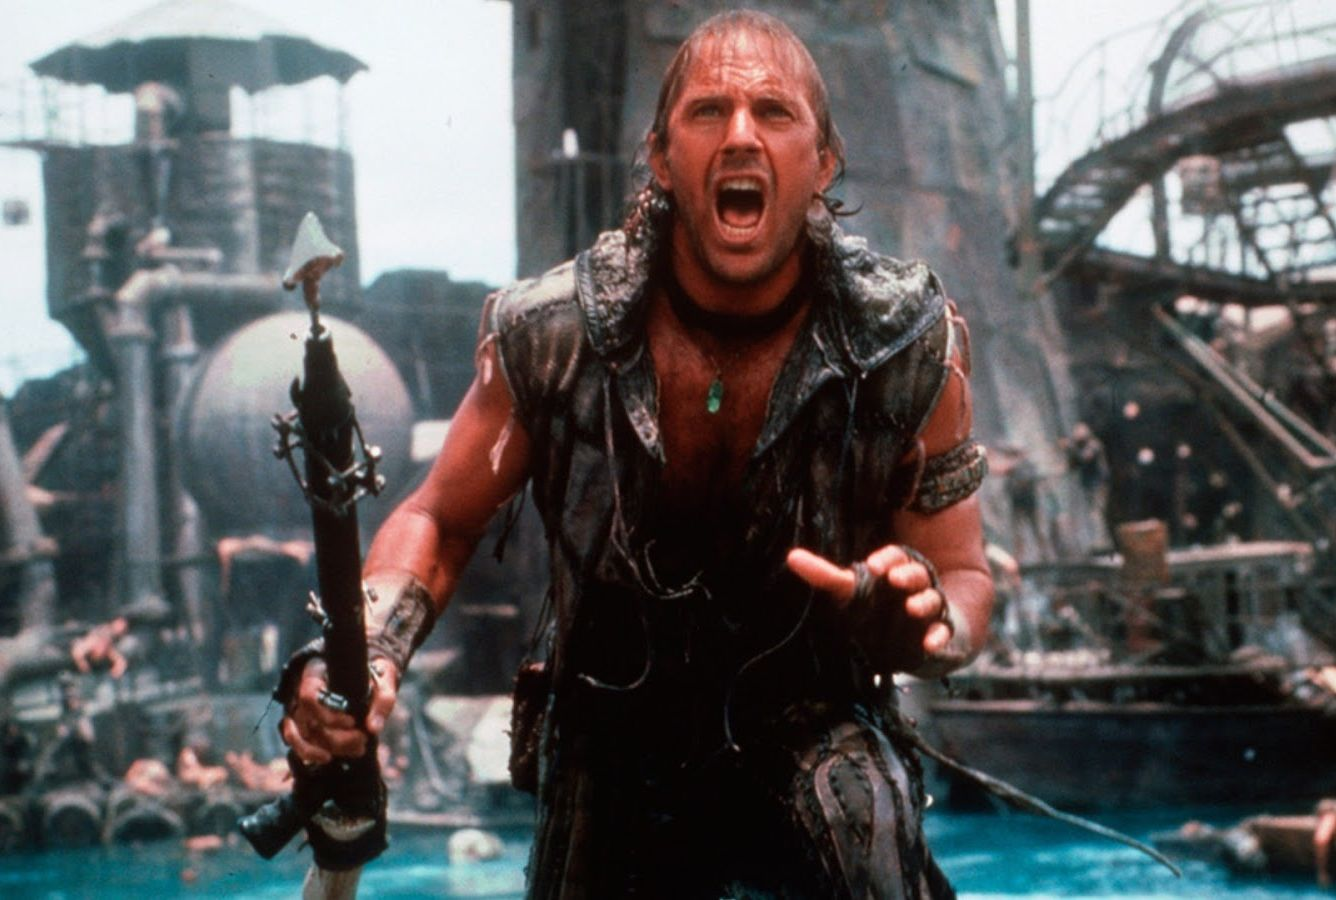 water1 0 Waterworld: The Story Behind One Of The Biggest Hollywood Disasters Of All Time